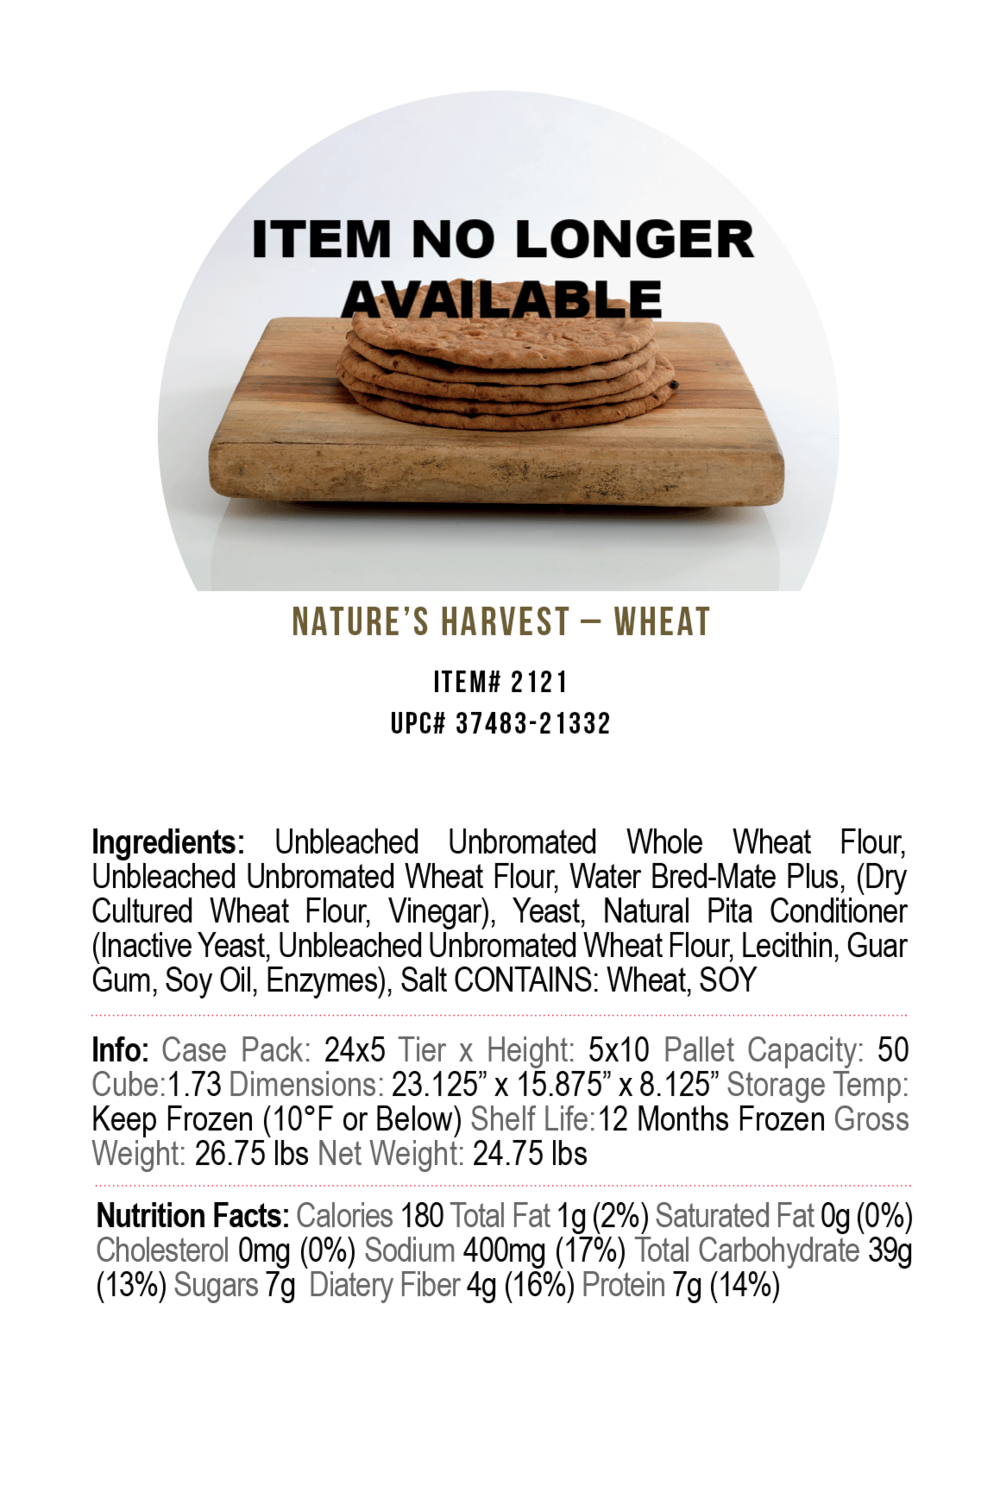 corfu-specialty-flat-breads-natures-harvest-wheat.png